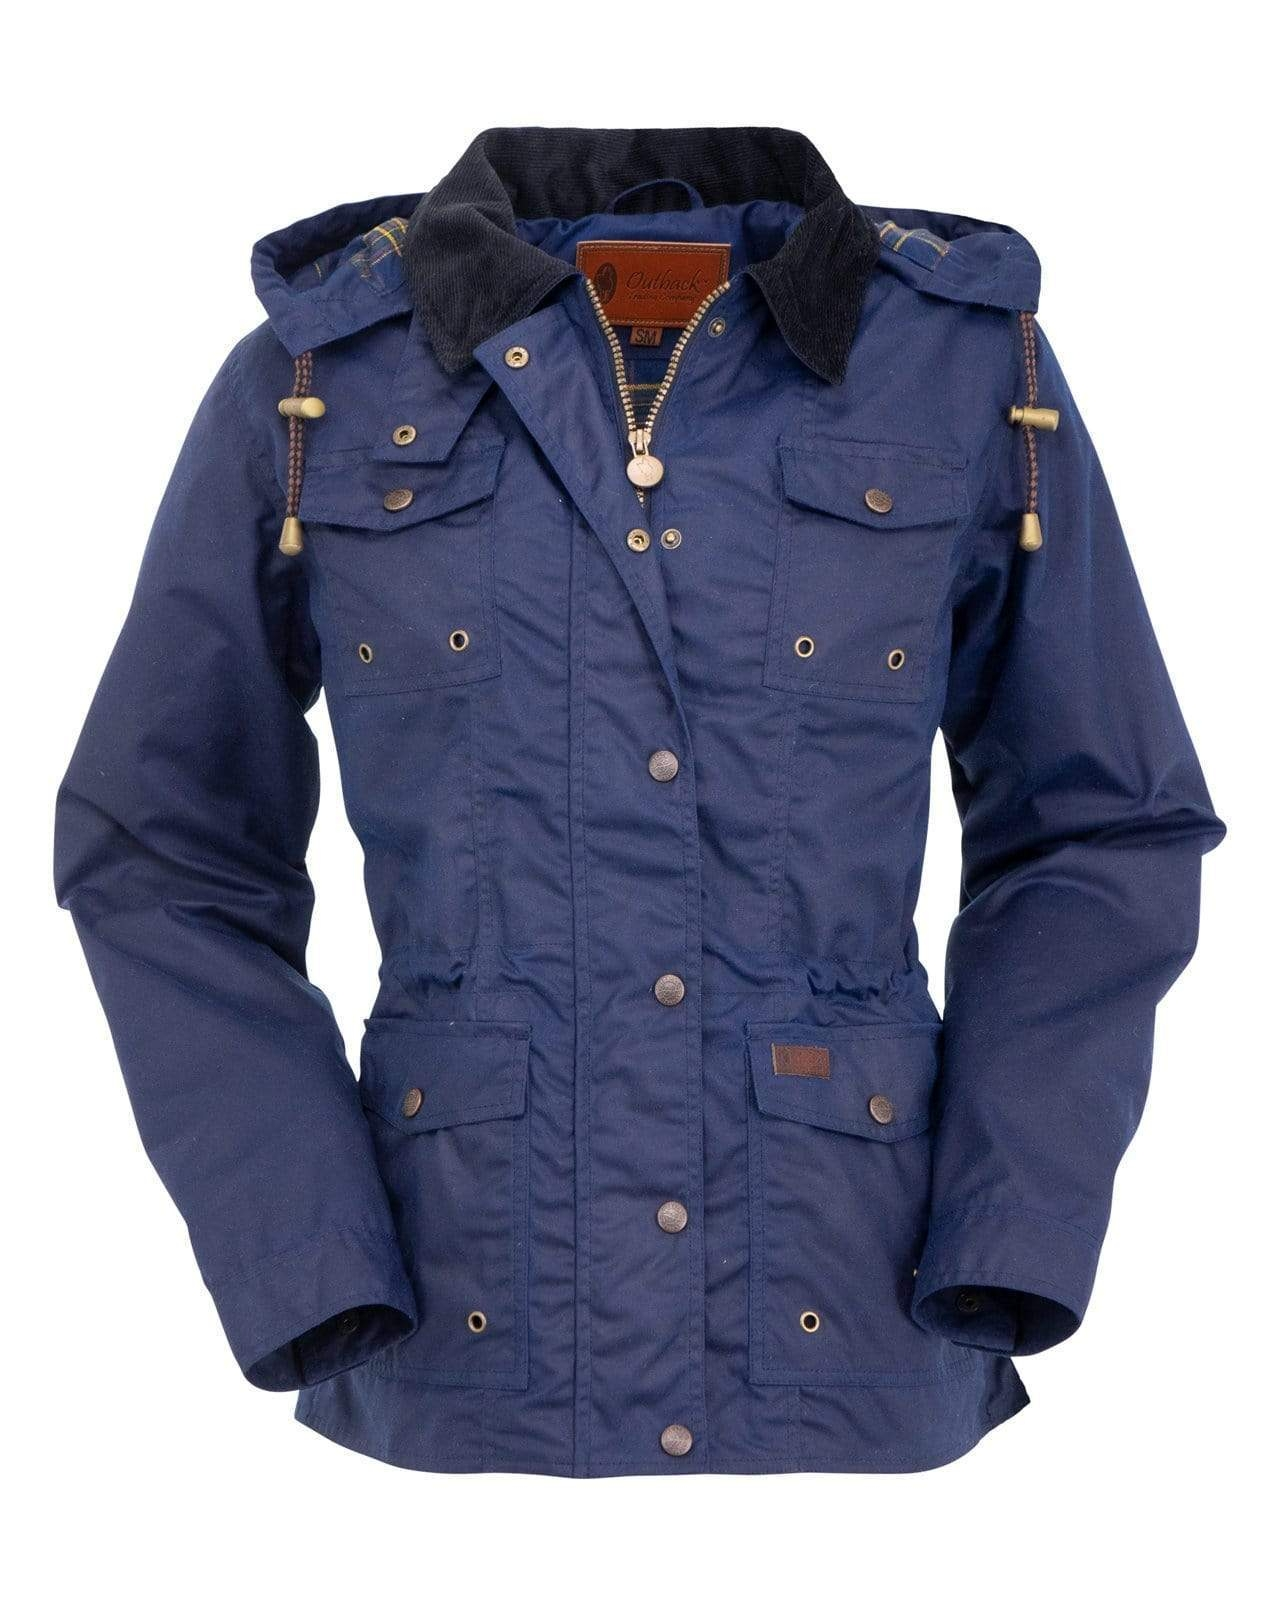 Outback Jill-A-Roo - Womens Jacket